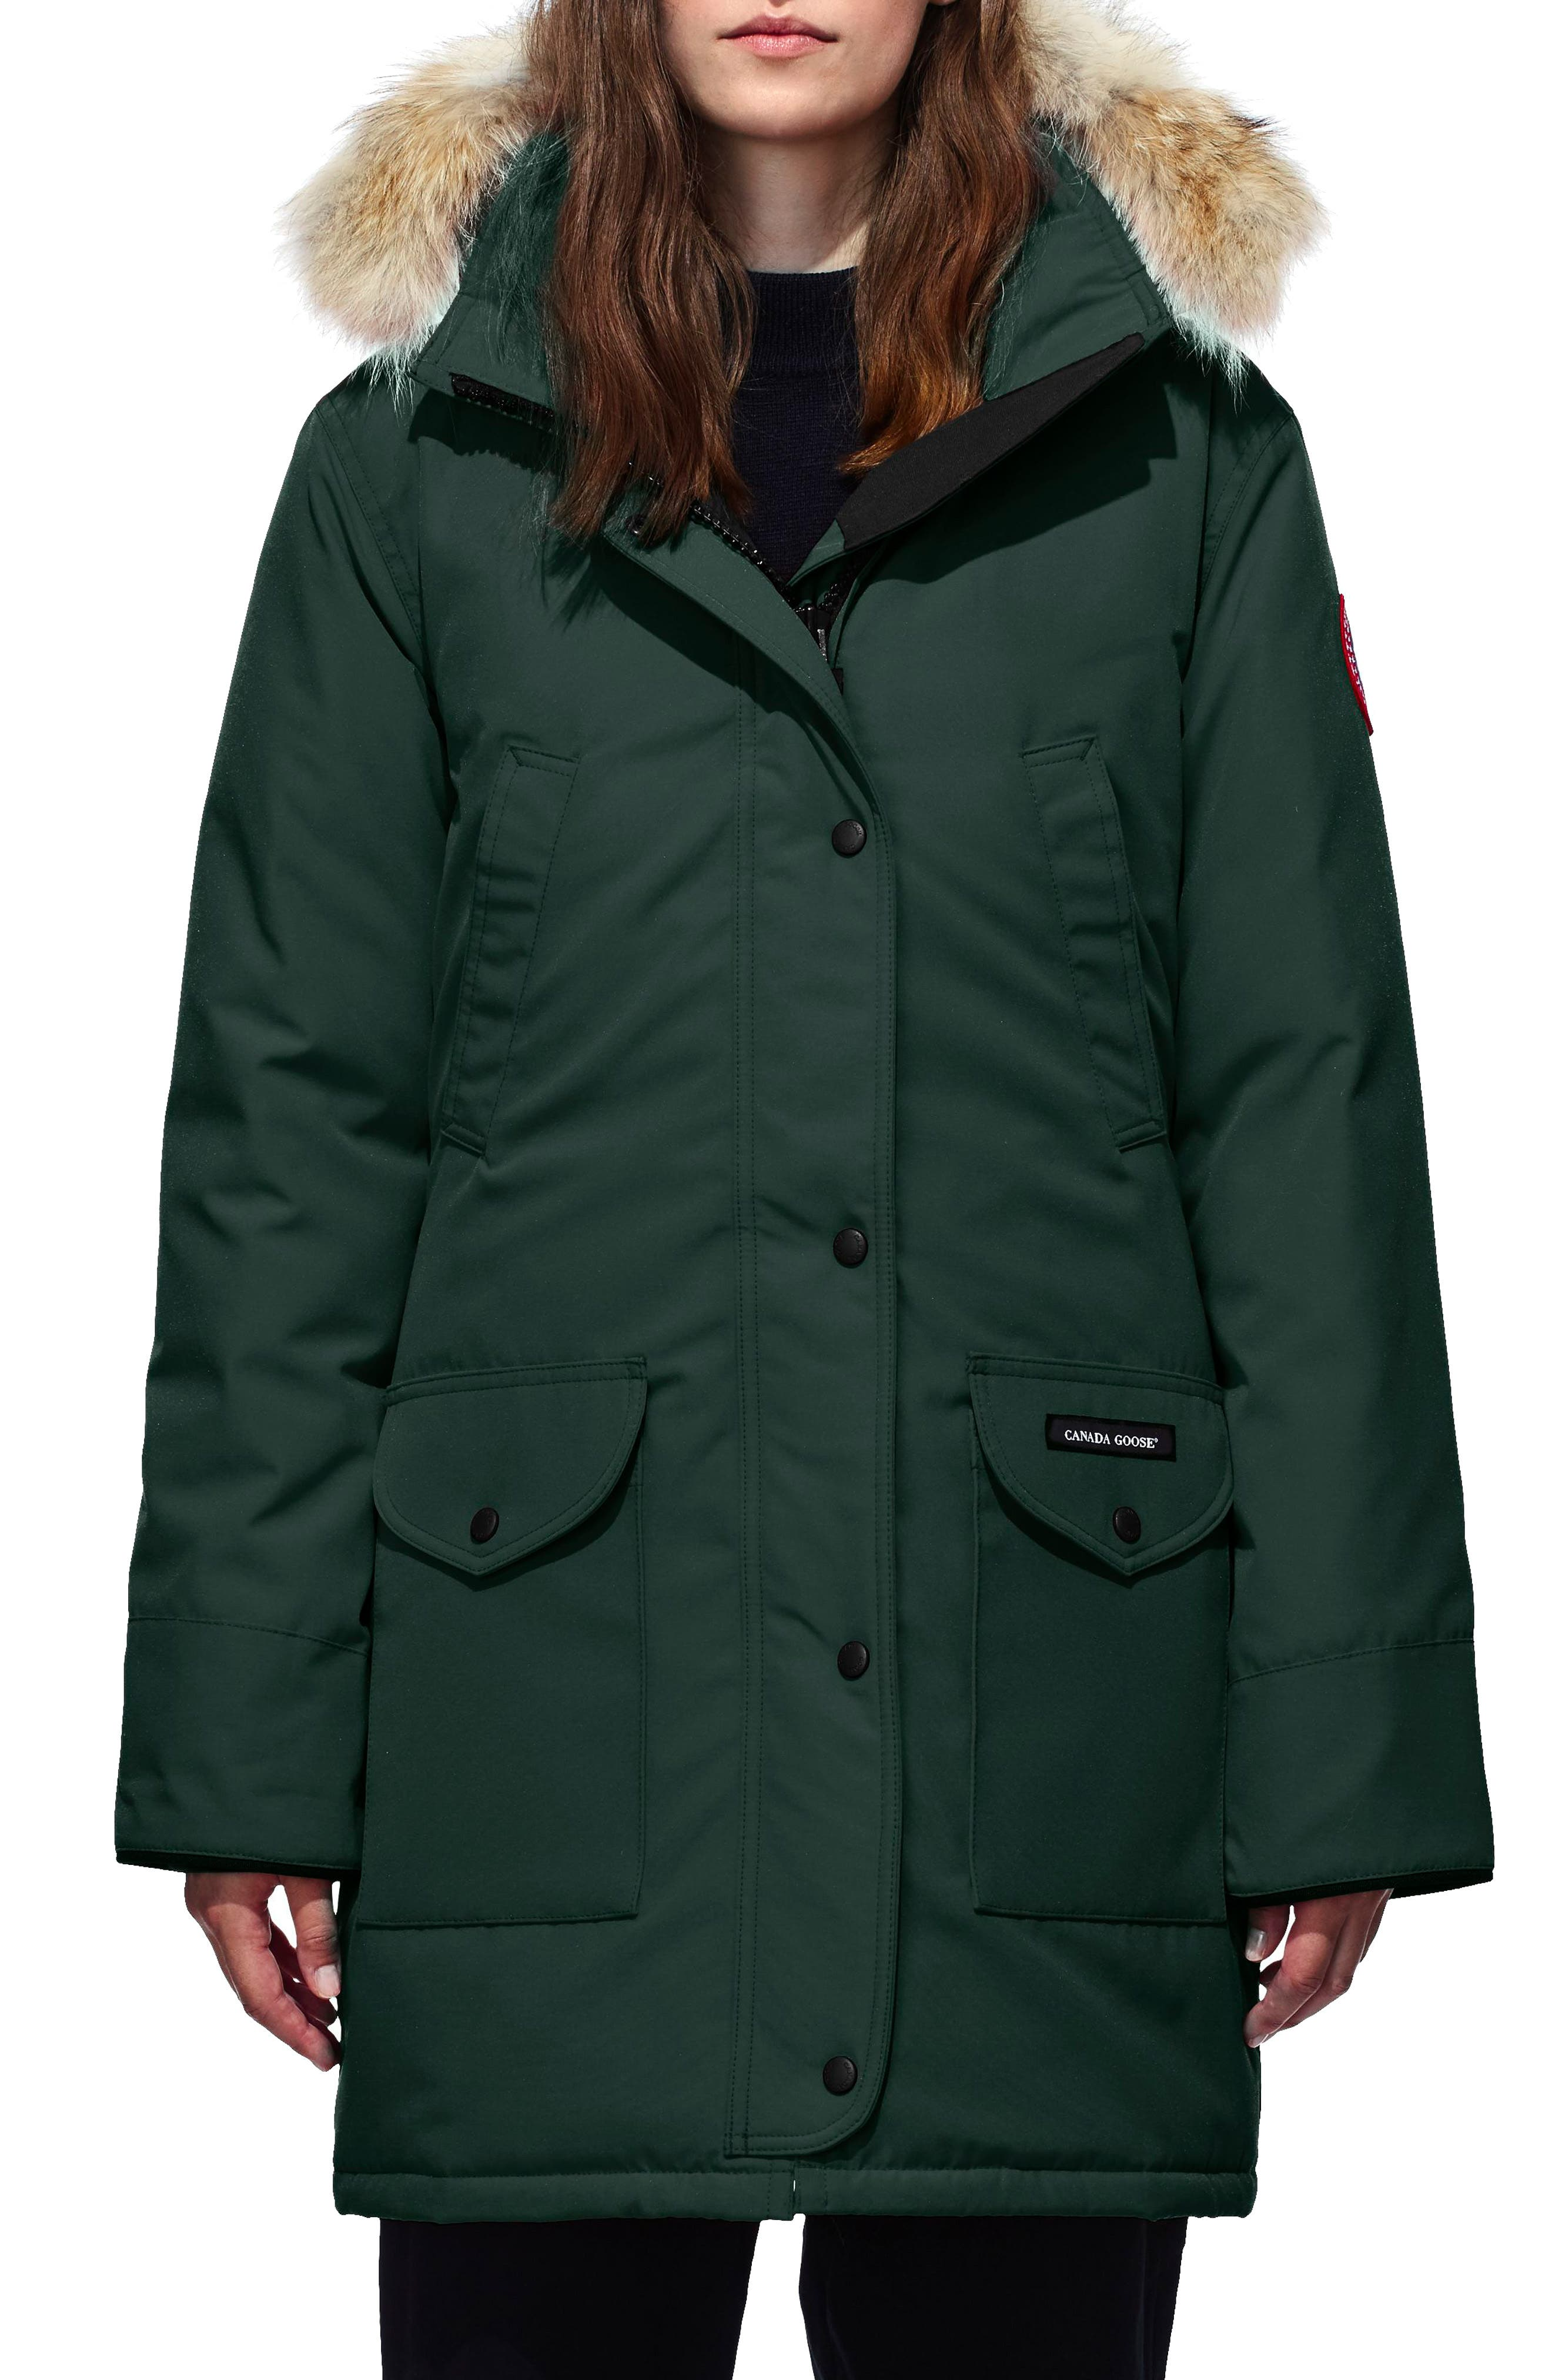 'Trillium' Regular Fit Down Parka with Genuine Coyote Fur Trim,                             Main thumbnail 1, color,                             SPRUCE